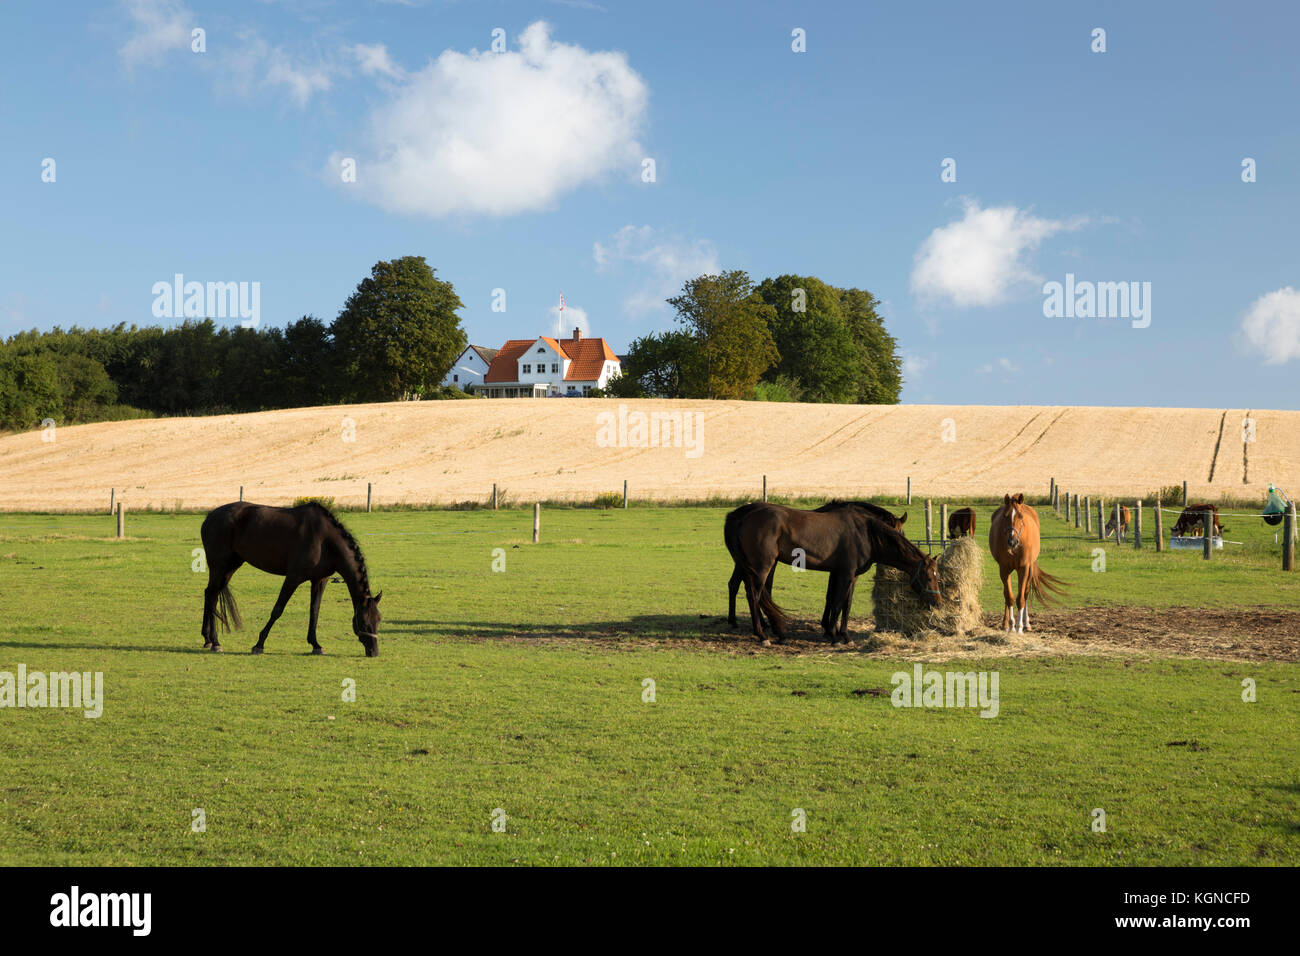 Danish farmhouse with wheat field and grazing horses in foreground, Munkerup, Zealand, Denmark, Europe - Stock Image